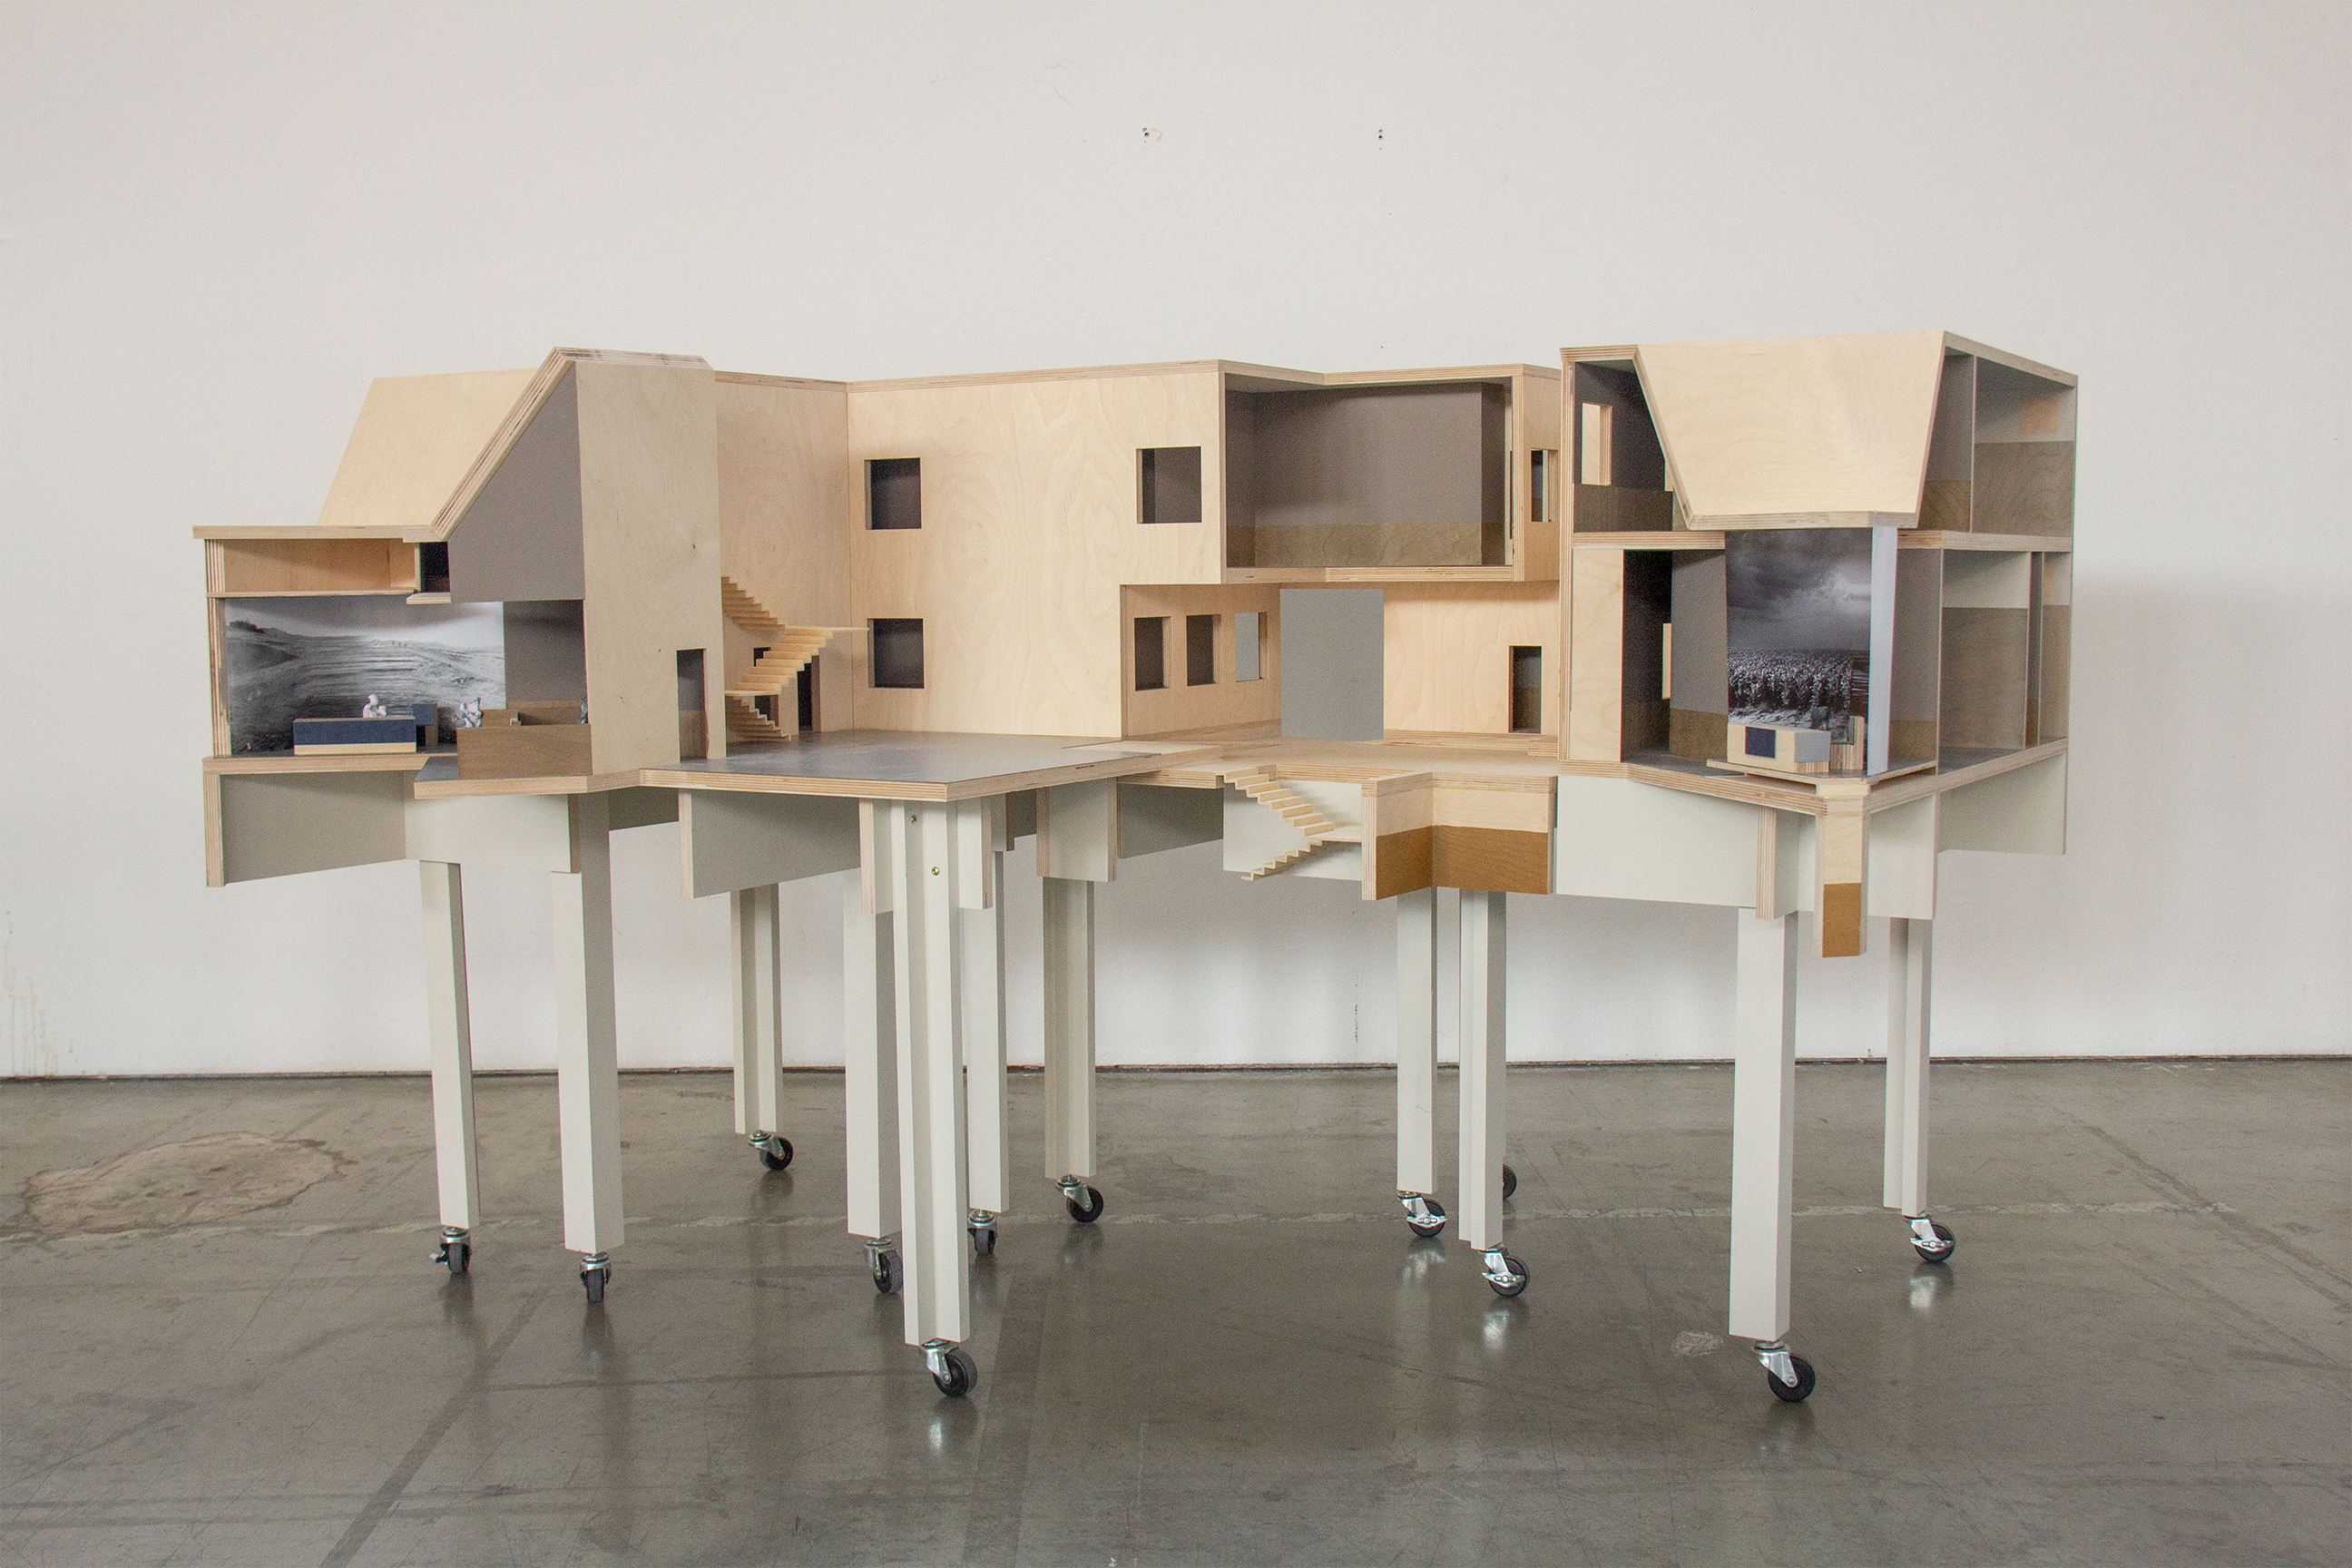 a niche architecture for immigration court by Benjamin Wiesgall